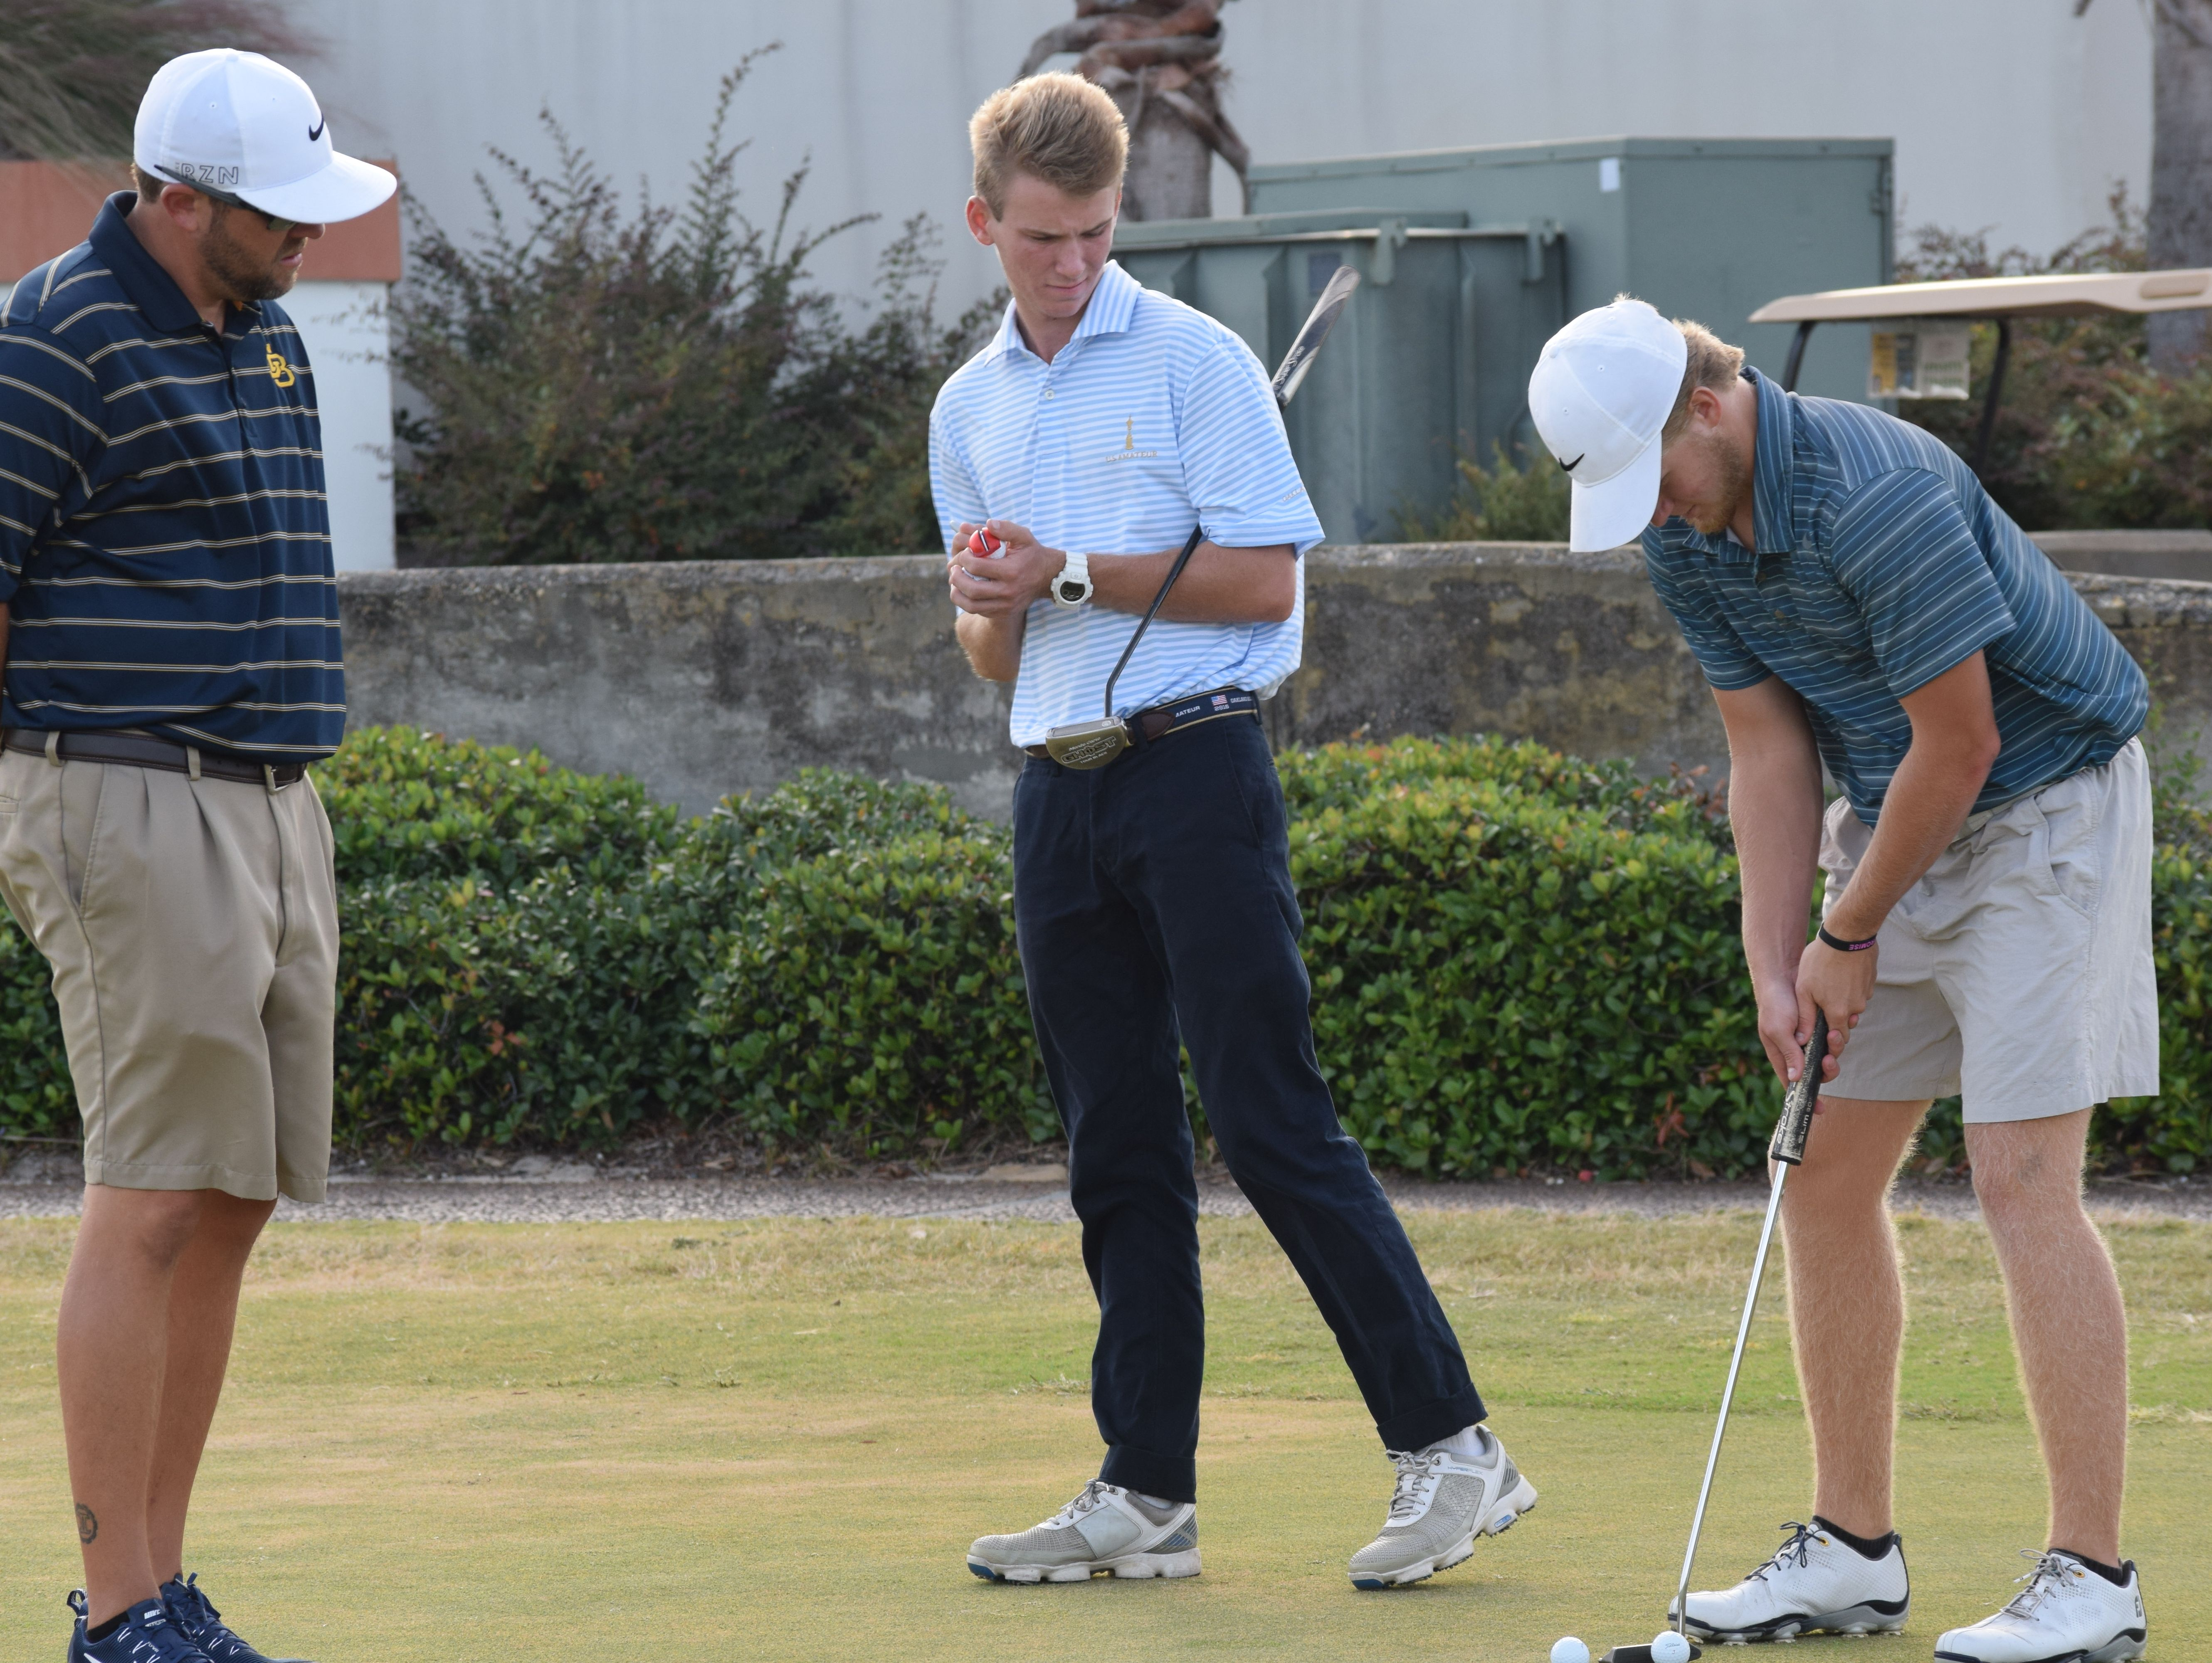 Gulf Breeze coach Adam Smith watches seniors Brian Richards and RJ Phillips practice Wednesday at Tiger Point. The Dolphins are one of four area teams in boys and girls classifications participating in the state prep golf tournament.